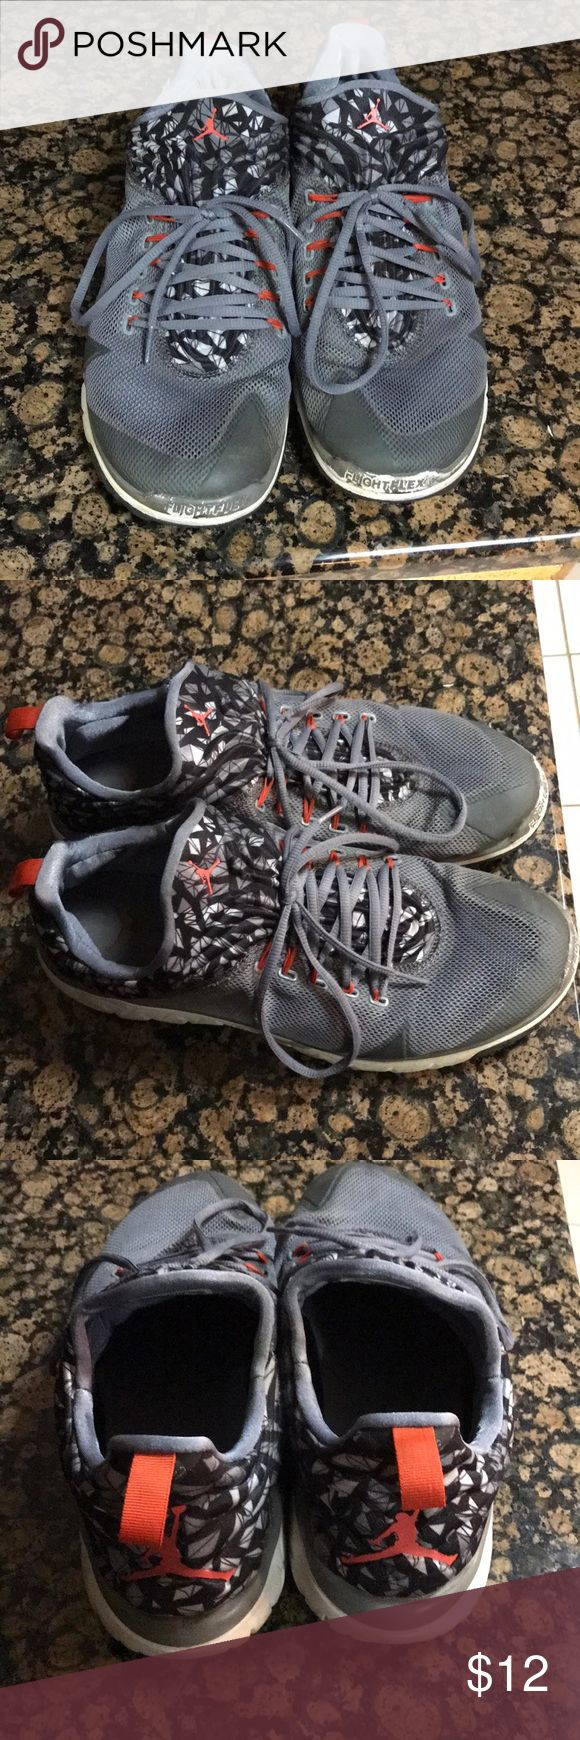 Jordan low top shoes Jordan low top trainer running shoes. Size 14. Wore strictly for outside running on concrete and trails. In decent shape just got a new pair to run in. Worn shoes! Great for running! Air Jordan Shoes Sneakers